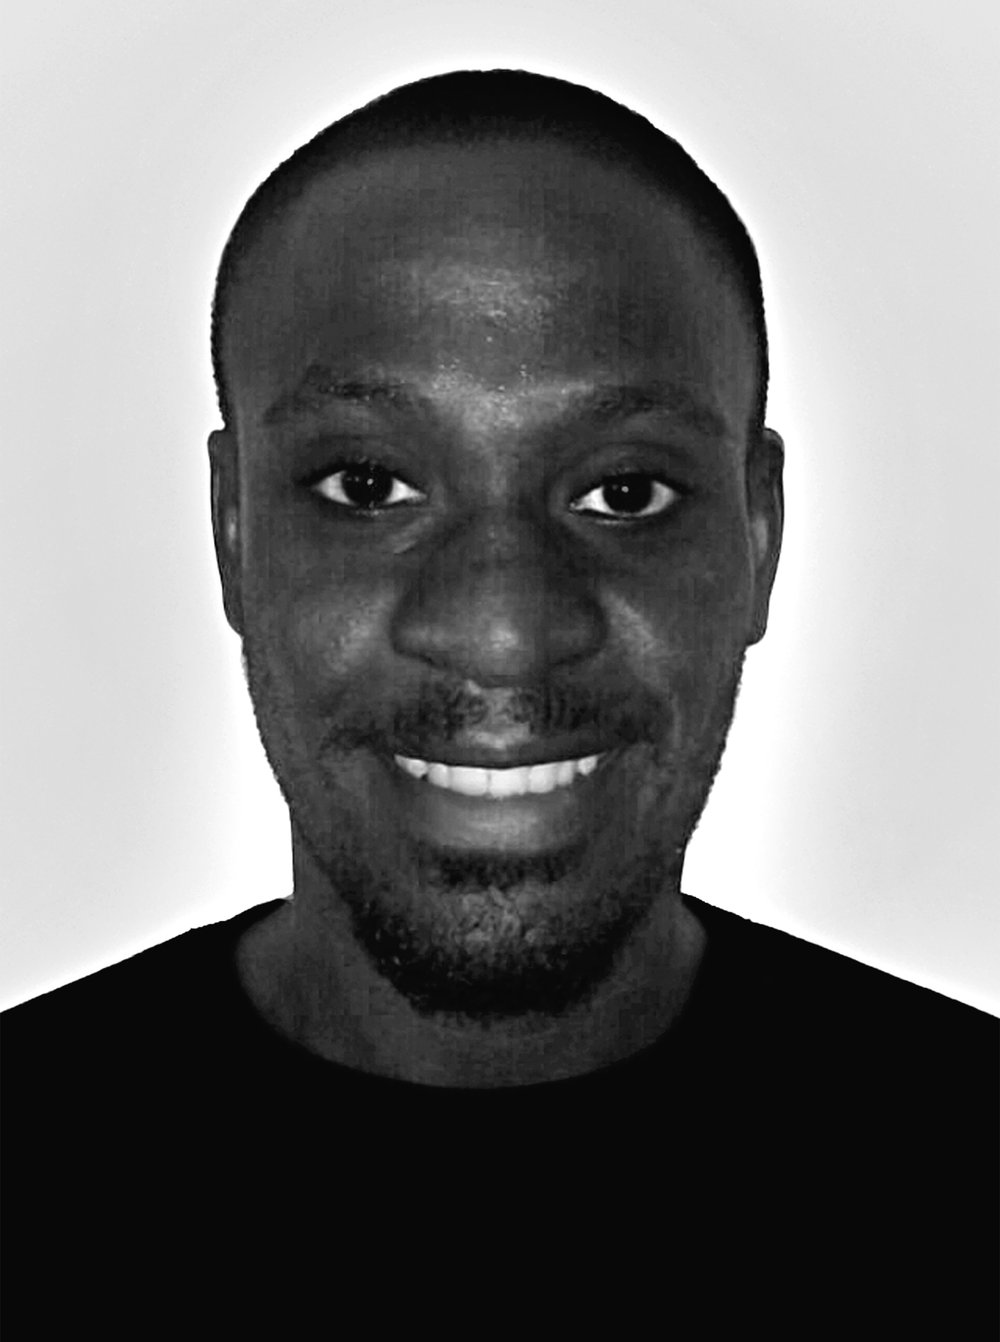 Segun Olowookere//Treasurer Segun is a qualified management accountant and currently works for MANGO (Management Accounting for NGOs) as a financial management specialist. MANGO aims to strengthen the financial management and accountability of humanitarian and development NGOs and their partners. During his time at MANGO Segun has trained and provided consultancy to hundreds of NGO professionals in best practice financial management, strategic management and grant management all over the world.  Prior to joining MANGO Segun worked as a Finance Manager for Restless Development an, INGO development agency working with young people to become the next generation of leaders. He is also a social entrepreneur and passionate about inspiring young people and helping them to achieve their dreams.